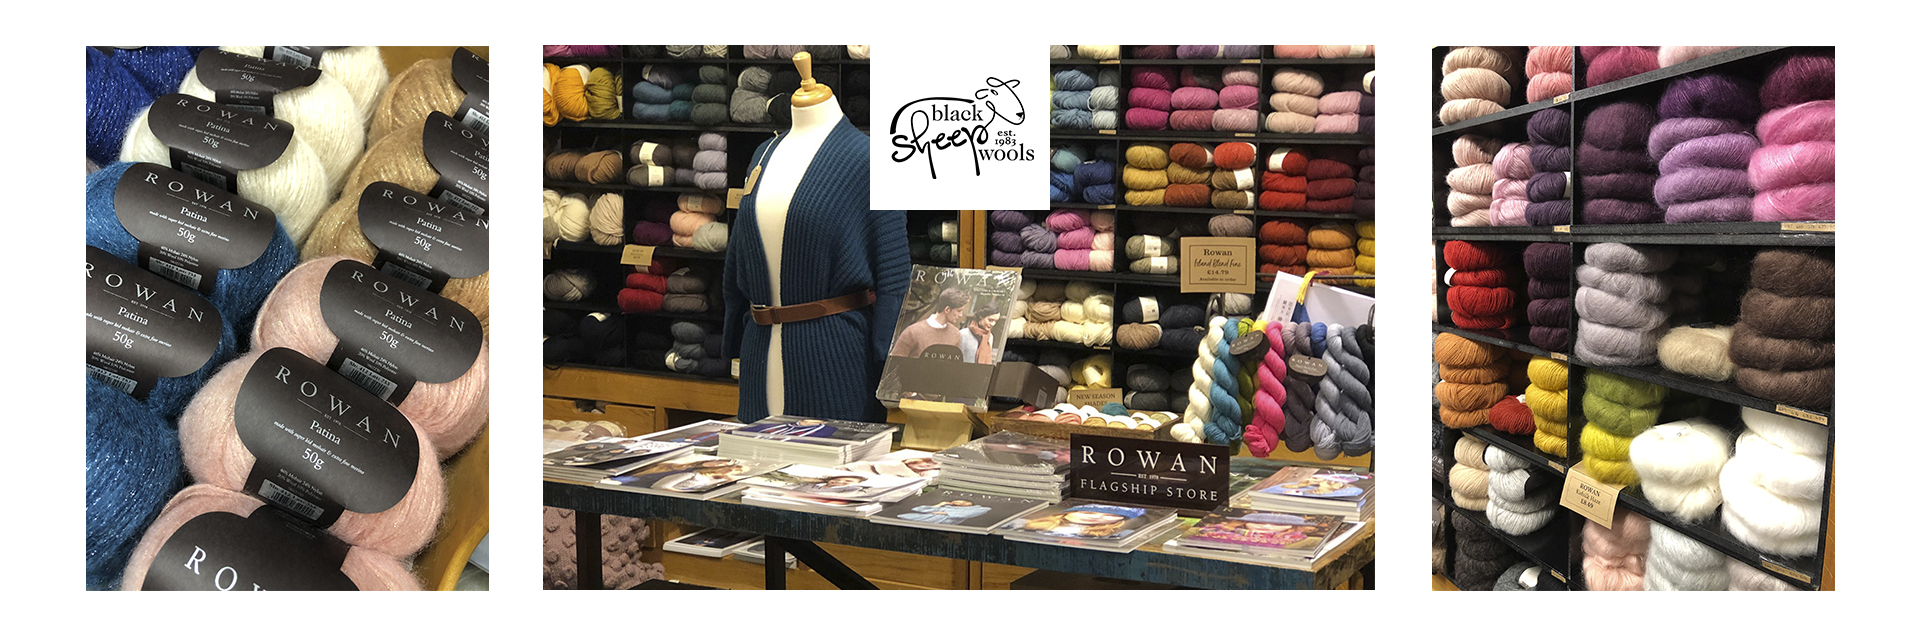 We are a family run yarn and needlecraft retailer based in the beautiful Cheshire countryside. Established in 1983 we are so passionate about what we sell. Today the business is run by brother and sister, Stephen and Sara. Our Craft Barn is the largest yarn shop in the UK and for those who can't visit in person we have our wonderful website.